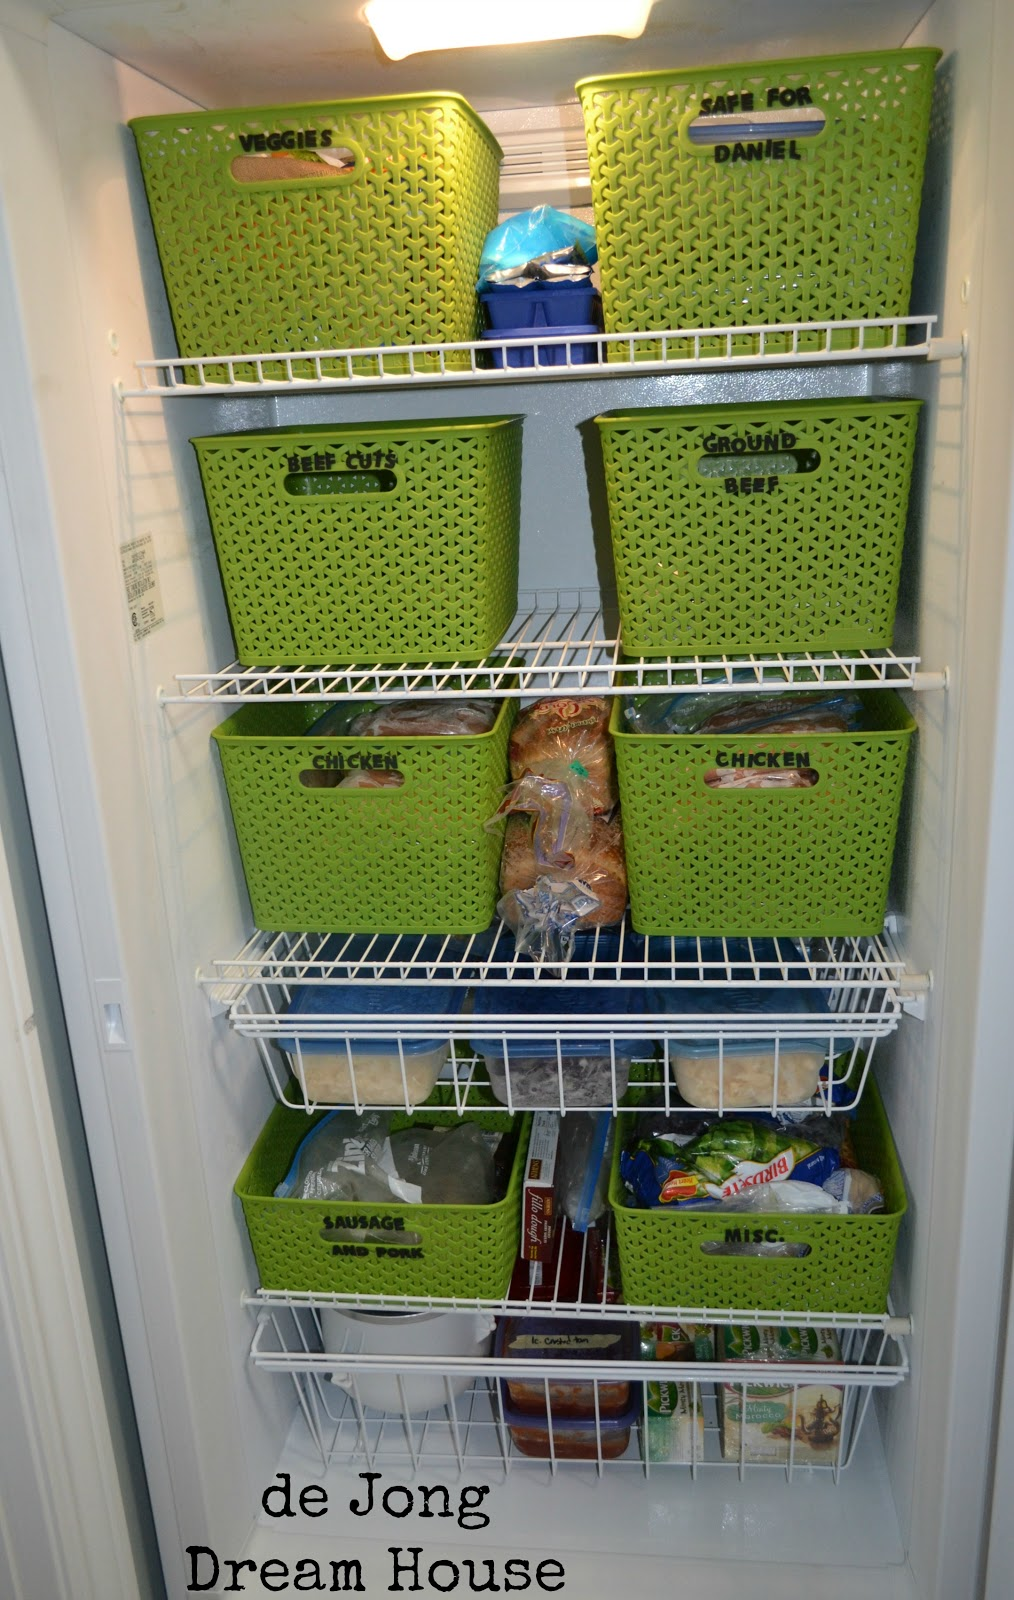 De Jong Dream House Organizing The Freezer